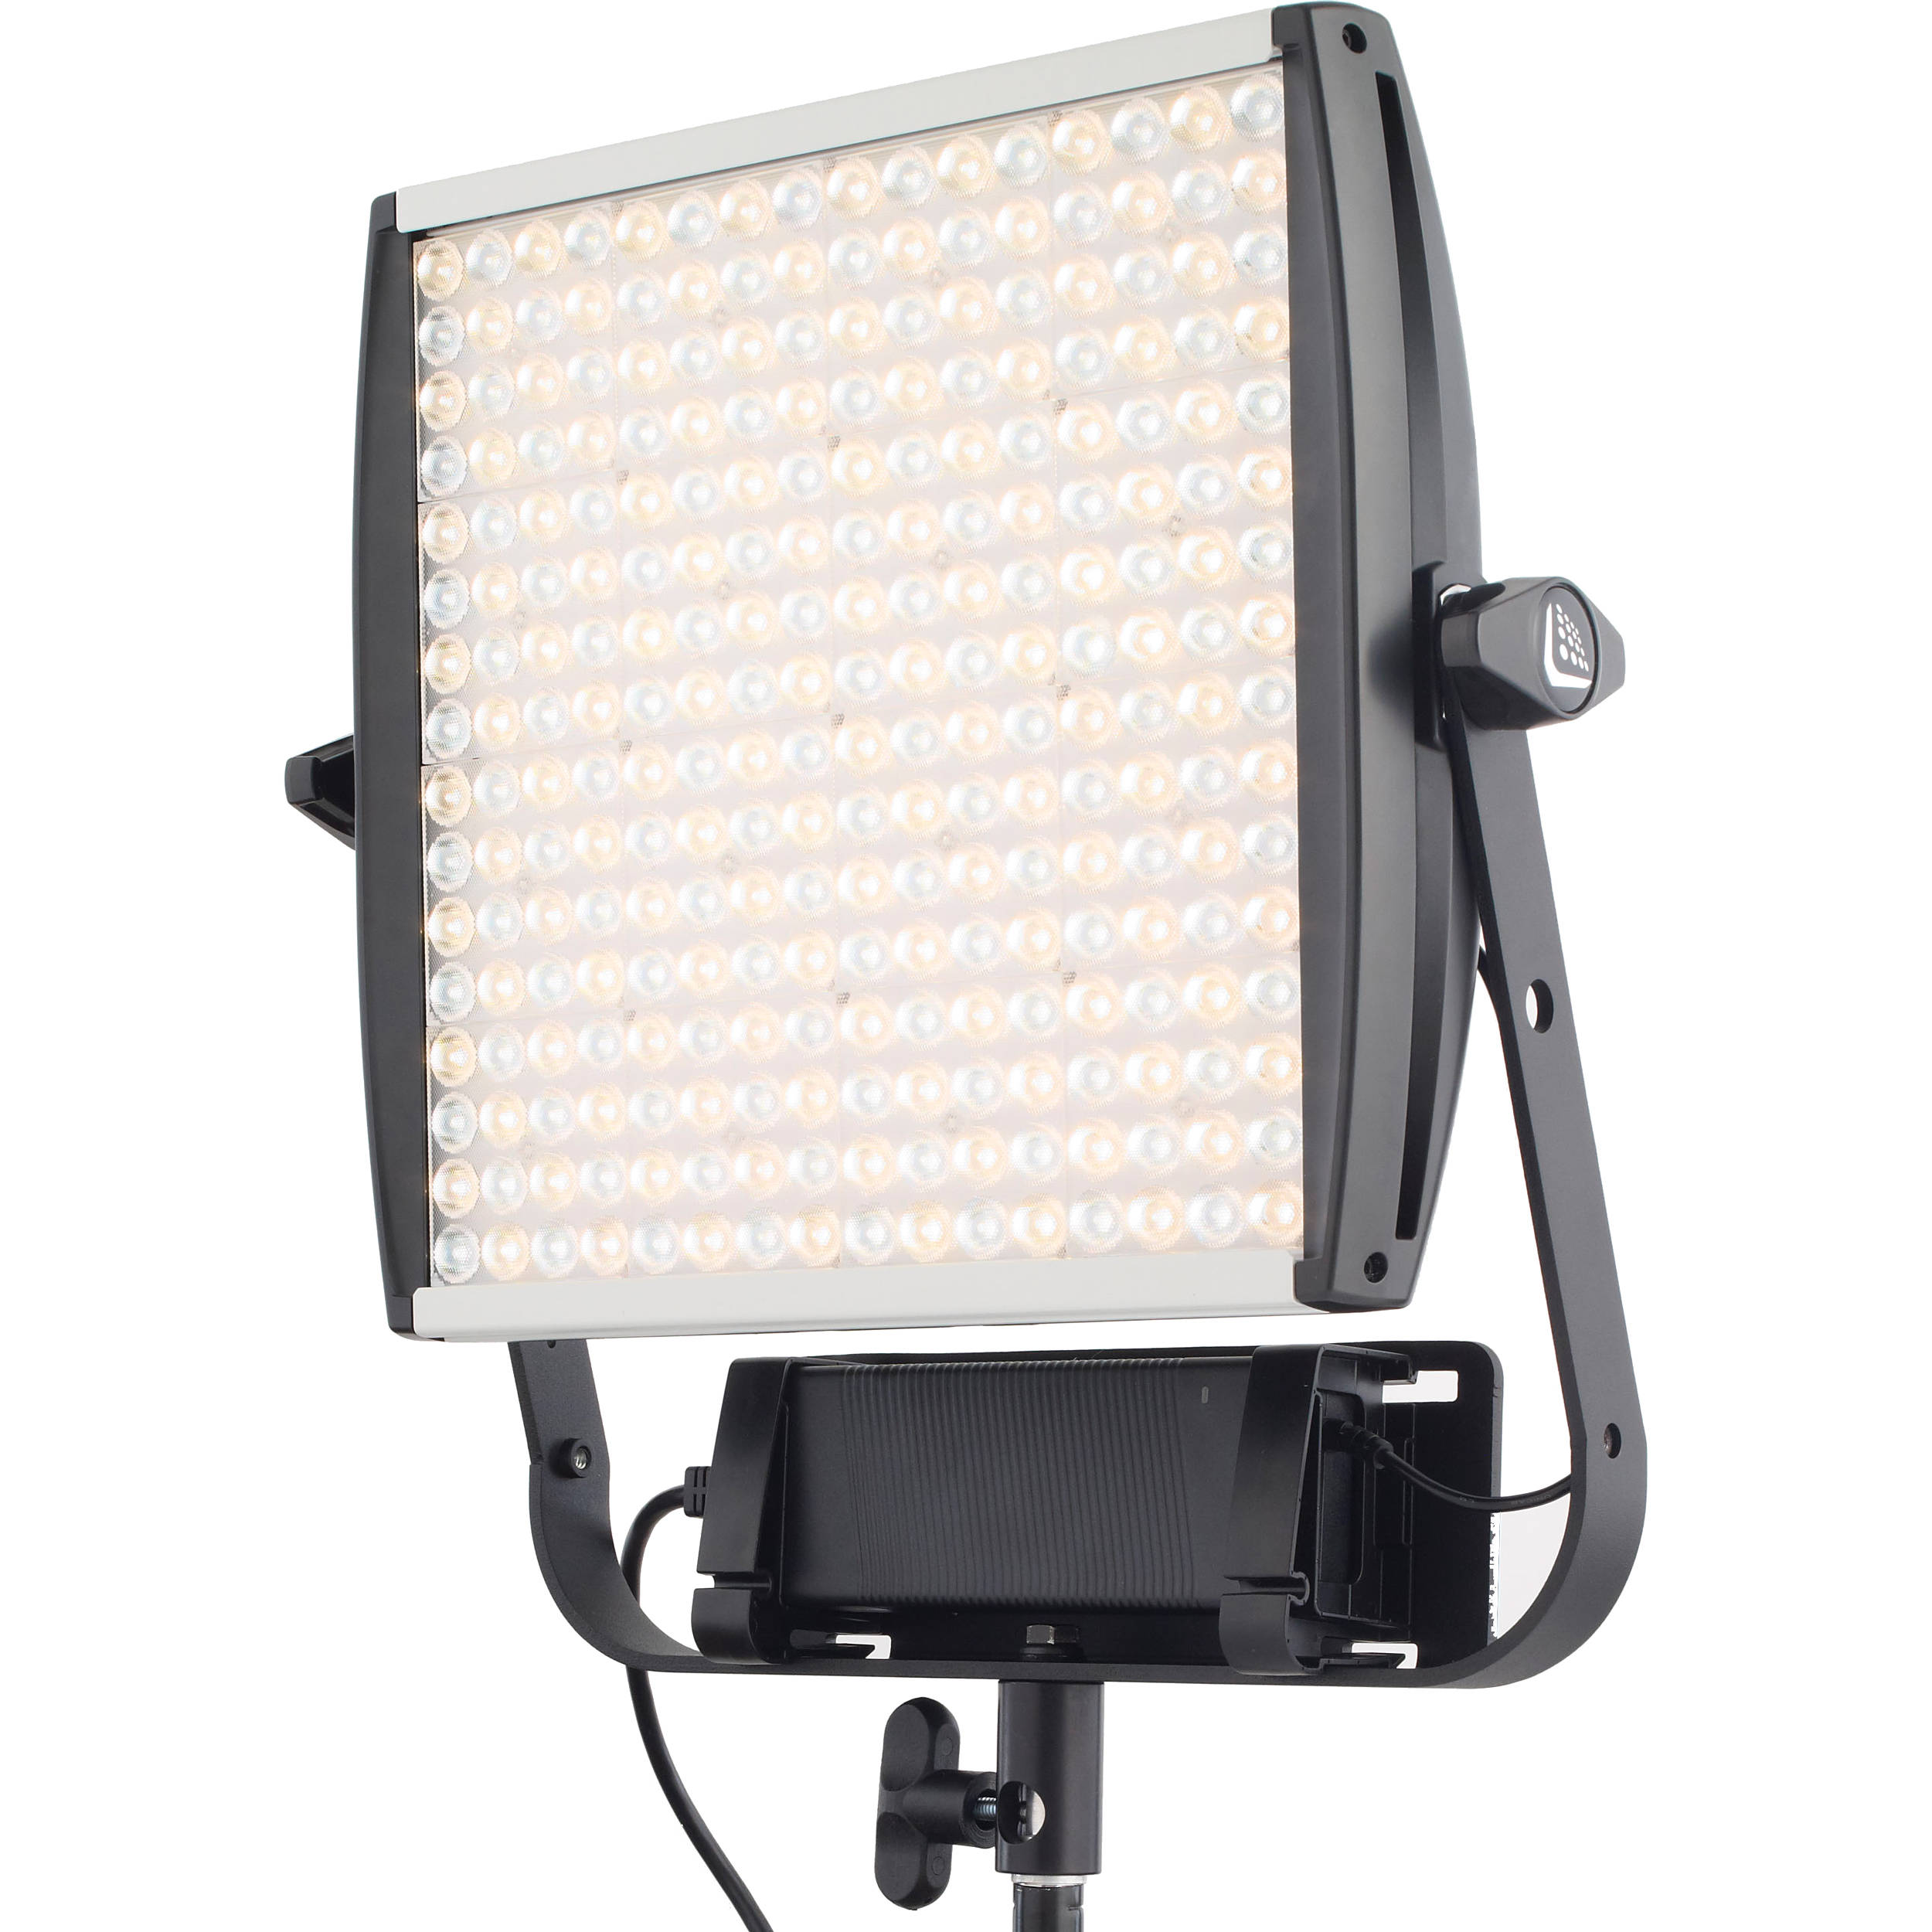 Litepanels Astra Ep 1x1 Bi-Color LED Panel for rent at Film Equipment Hire Ireland  sc 1 st  Lighting Archives - Film Equipment Hire Ireland & Lighting Archives - Film Equipment Hire Ireland